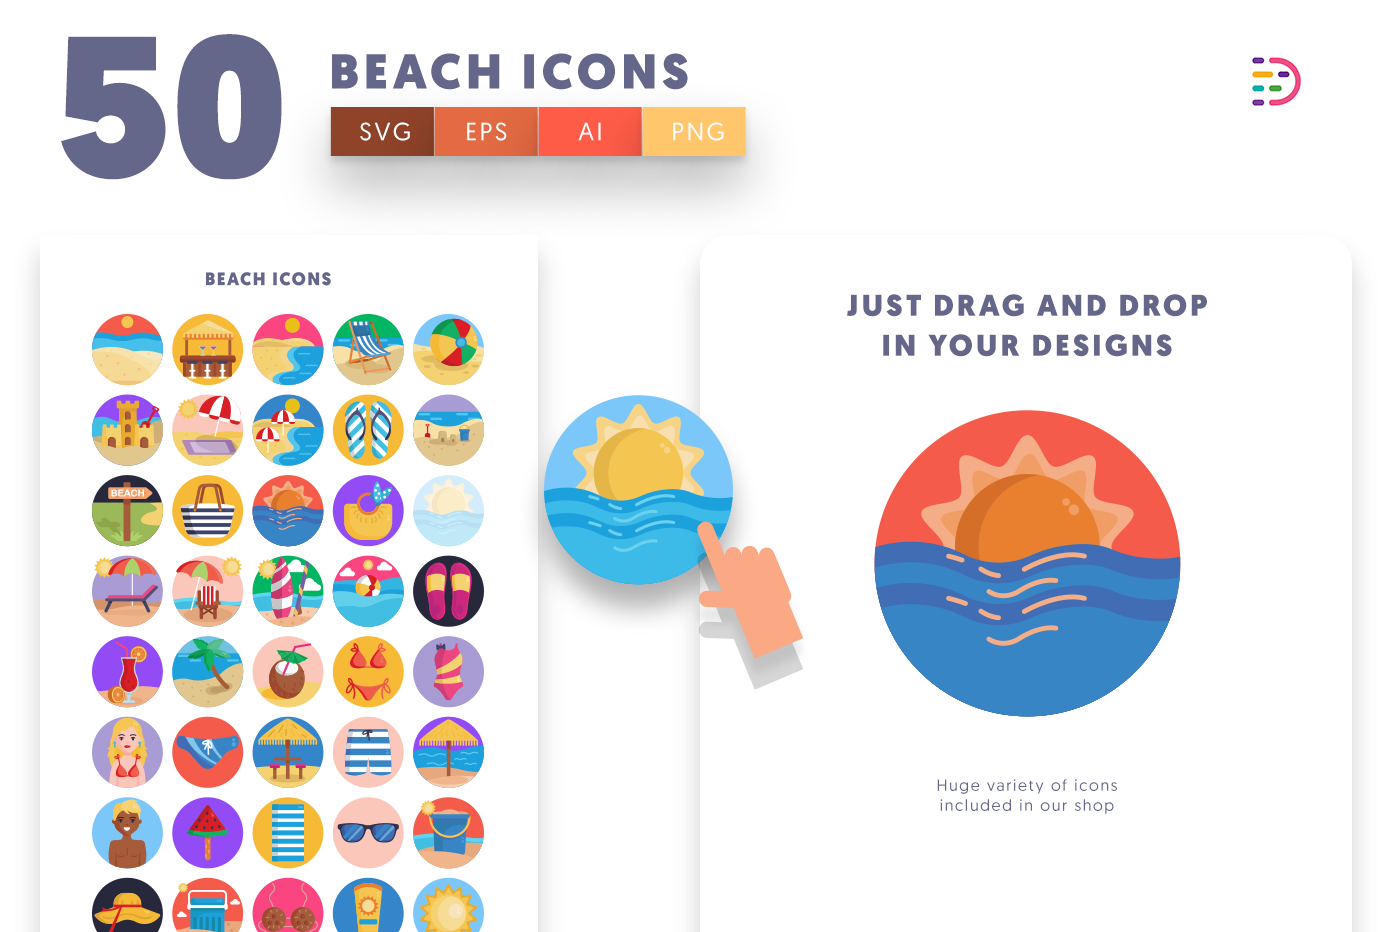 Drag and drop vector 50 Beach Icons